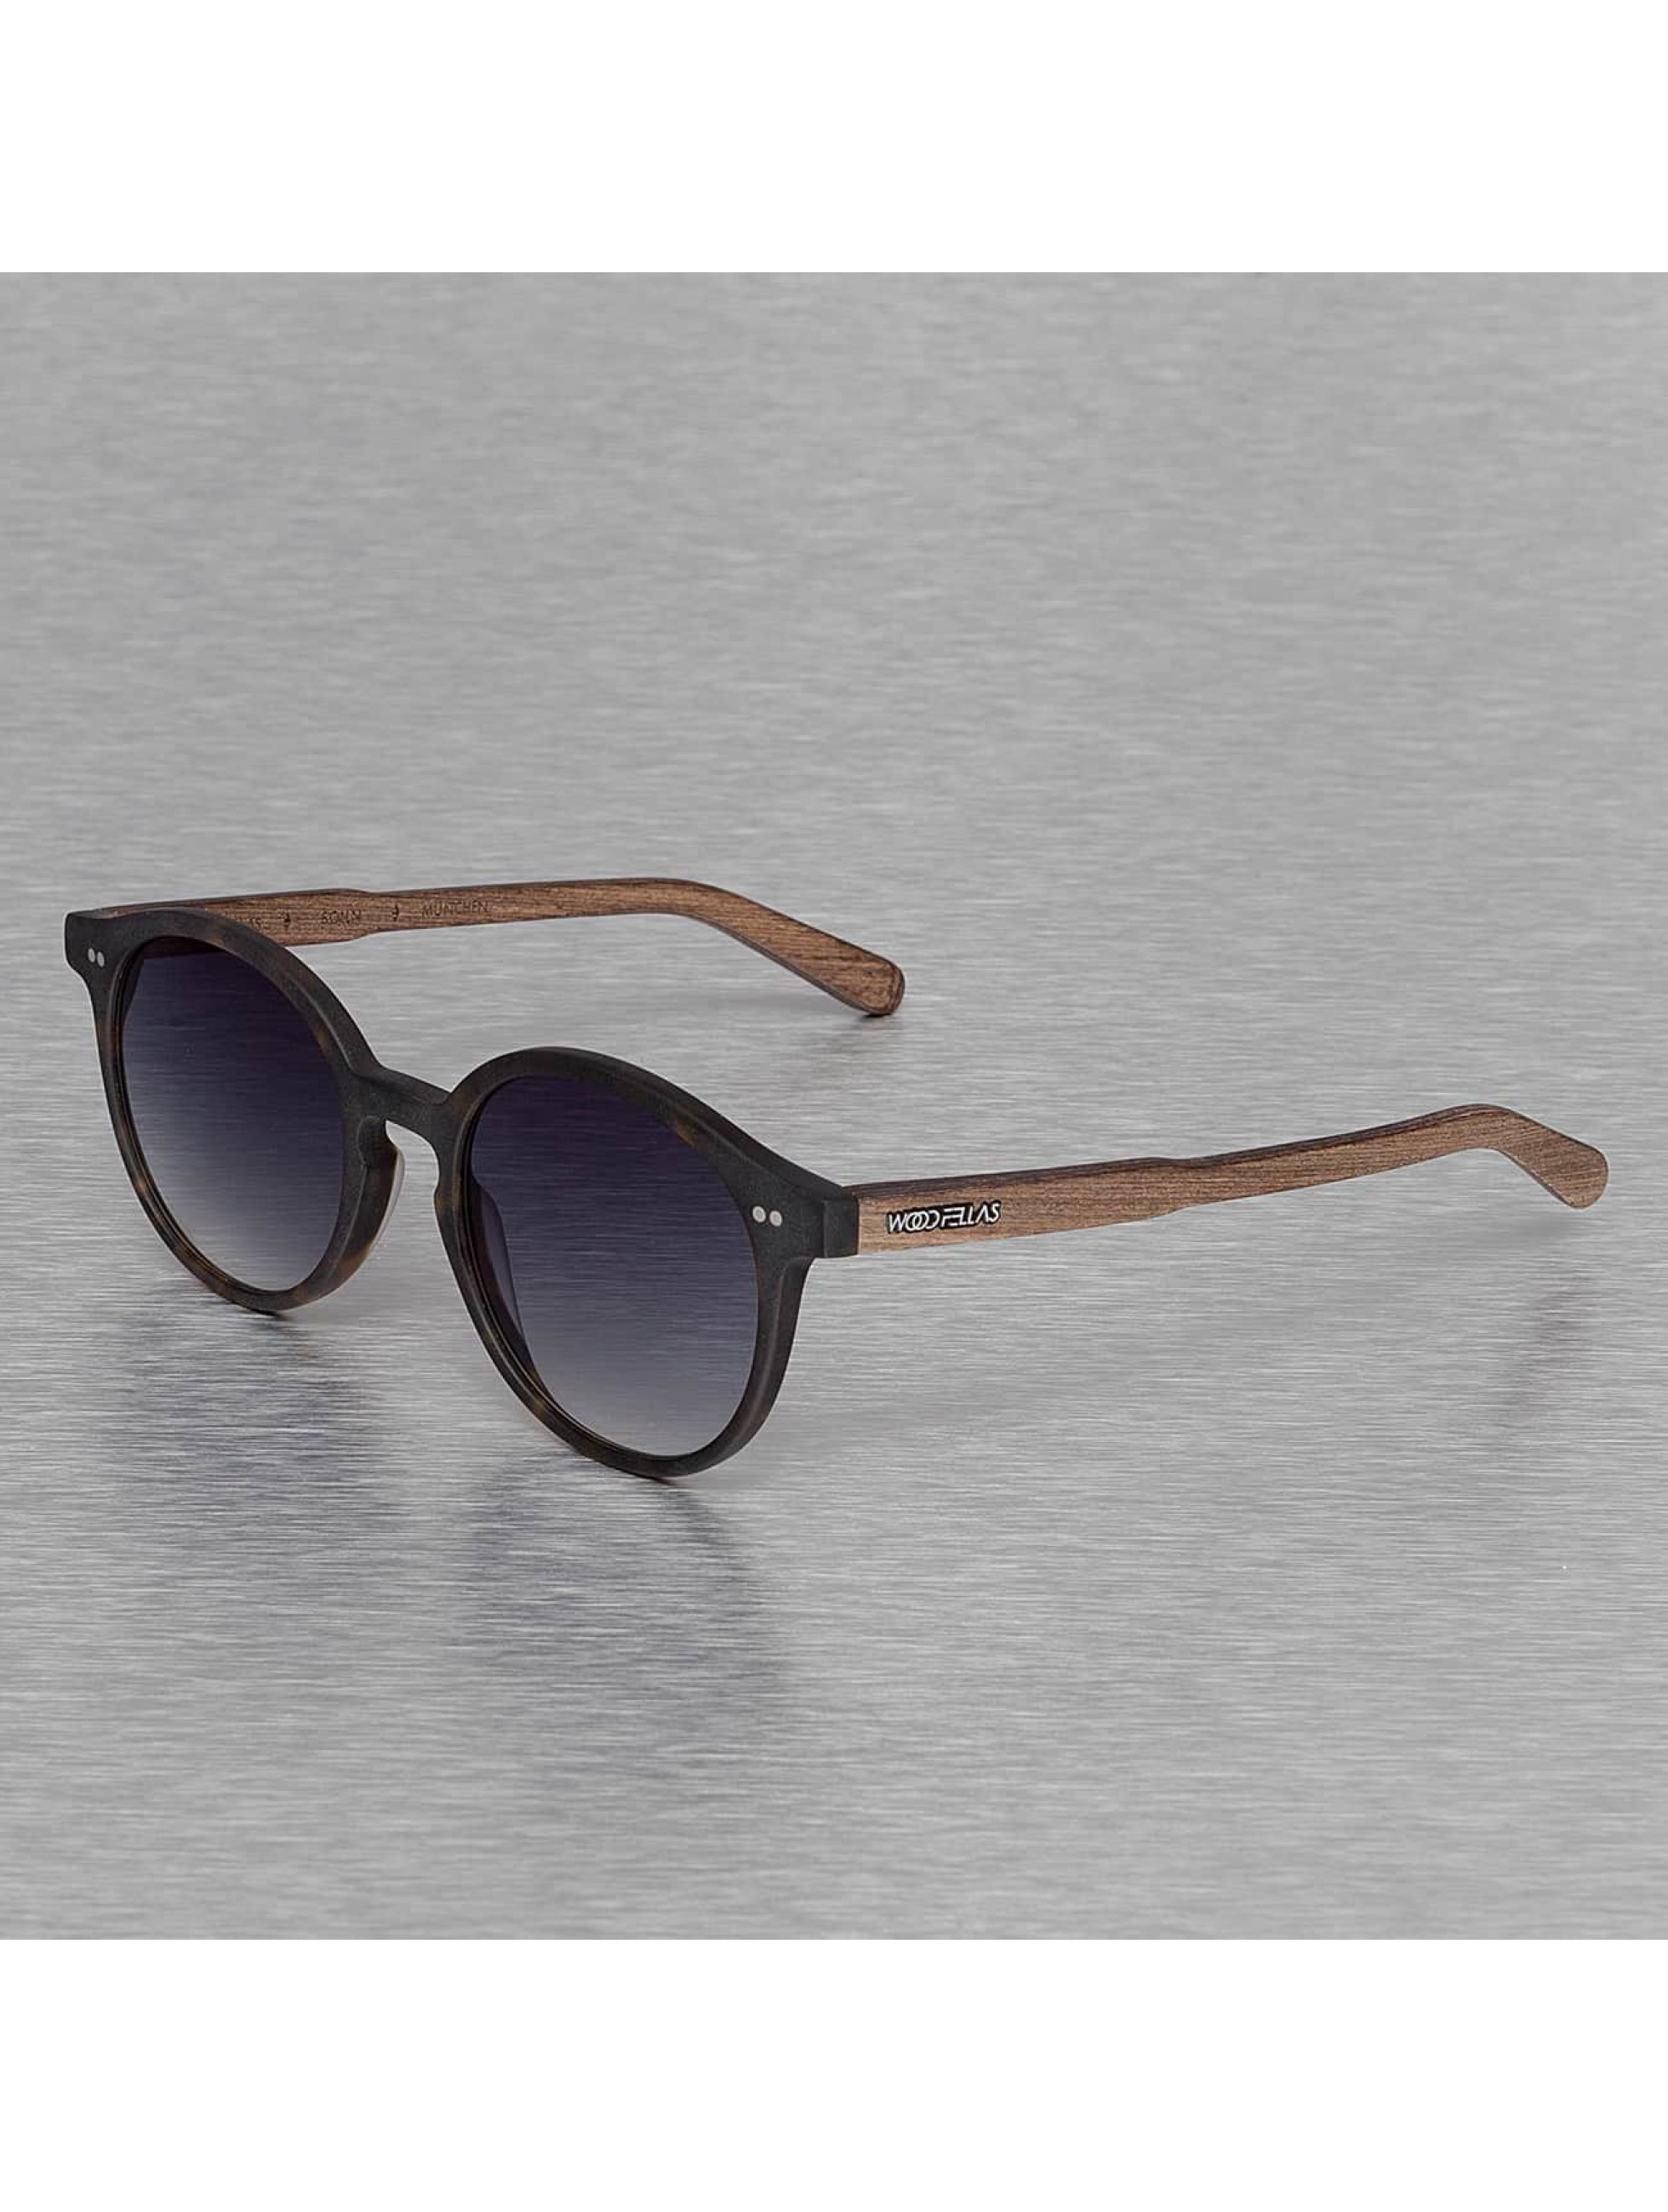 Wood Fellas Eyewear Männer,Frauen Sonnenbrille Eyewear Solln Polarized Mirror in braun